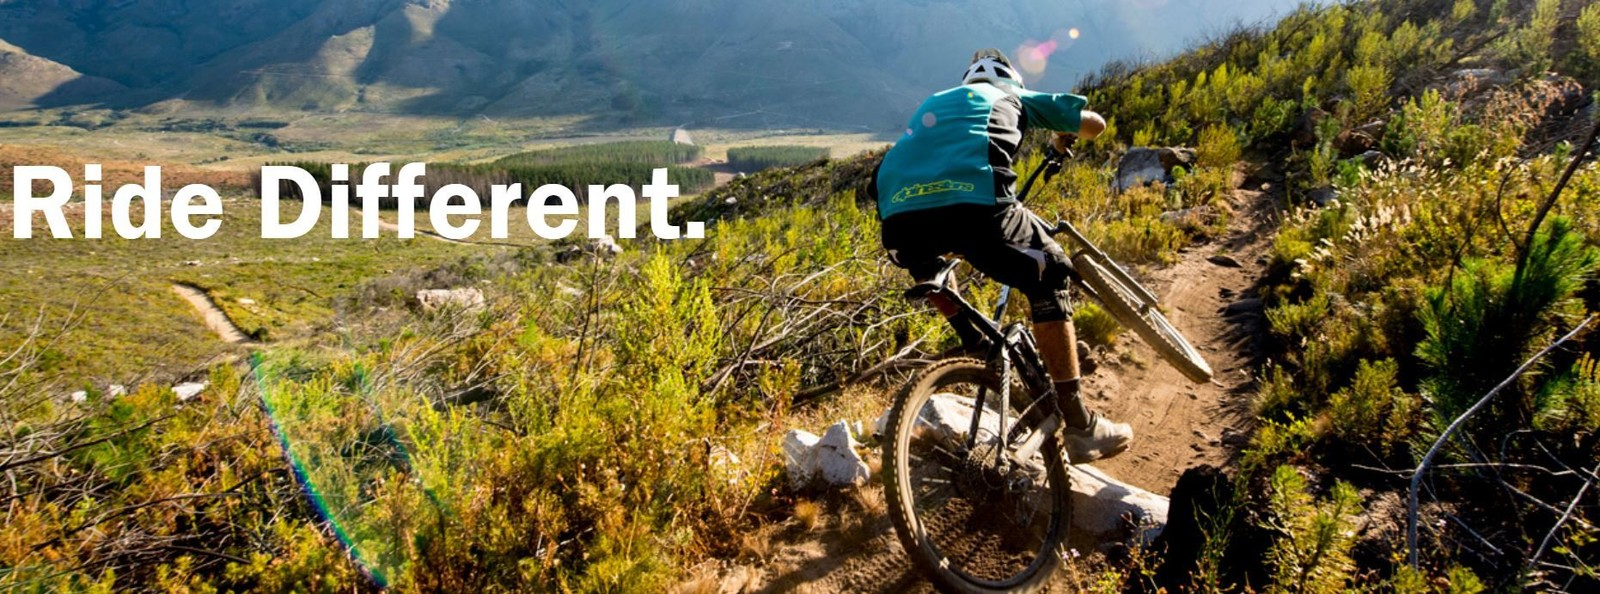 3bf9c710c29 PYGA USA will be selling bikes through a direct hybrid sales model. Riders  will be able to purchase directly through www.pyga.us, and have bikes  shipped to ...